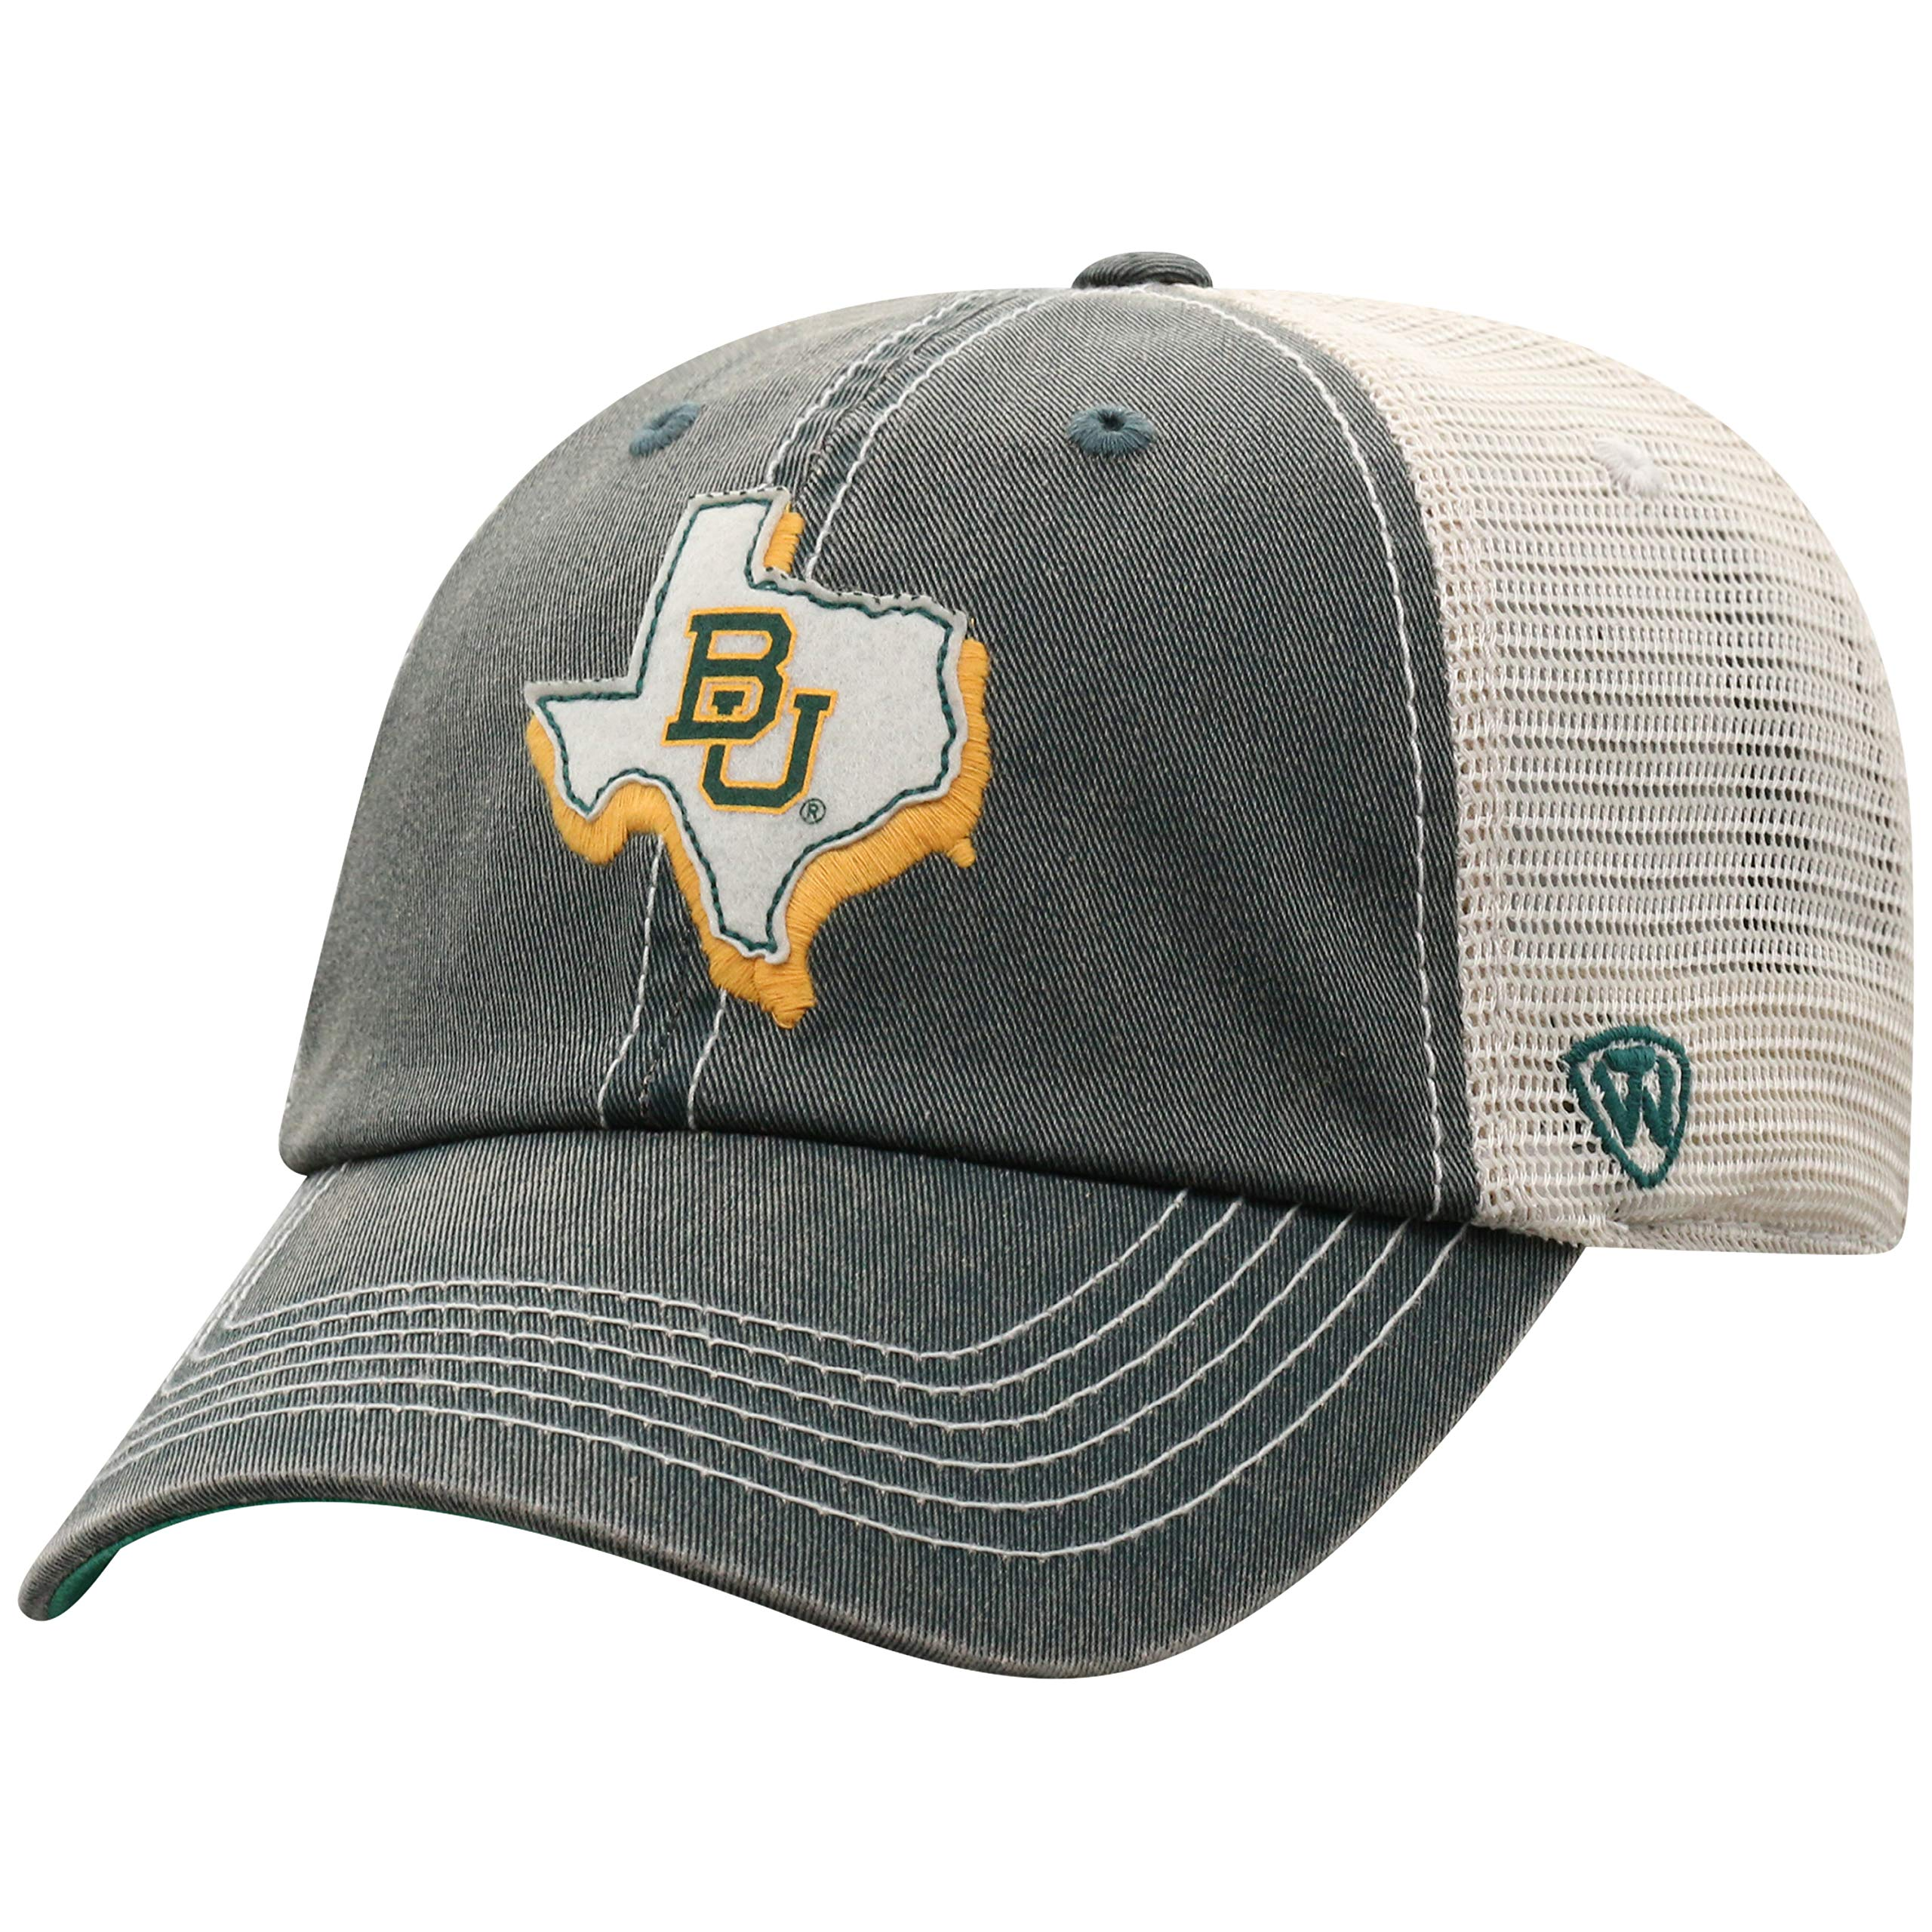 Top of the World Baylor Bears Men's Mesh-Back Hat Icon, Green, Adjustable